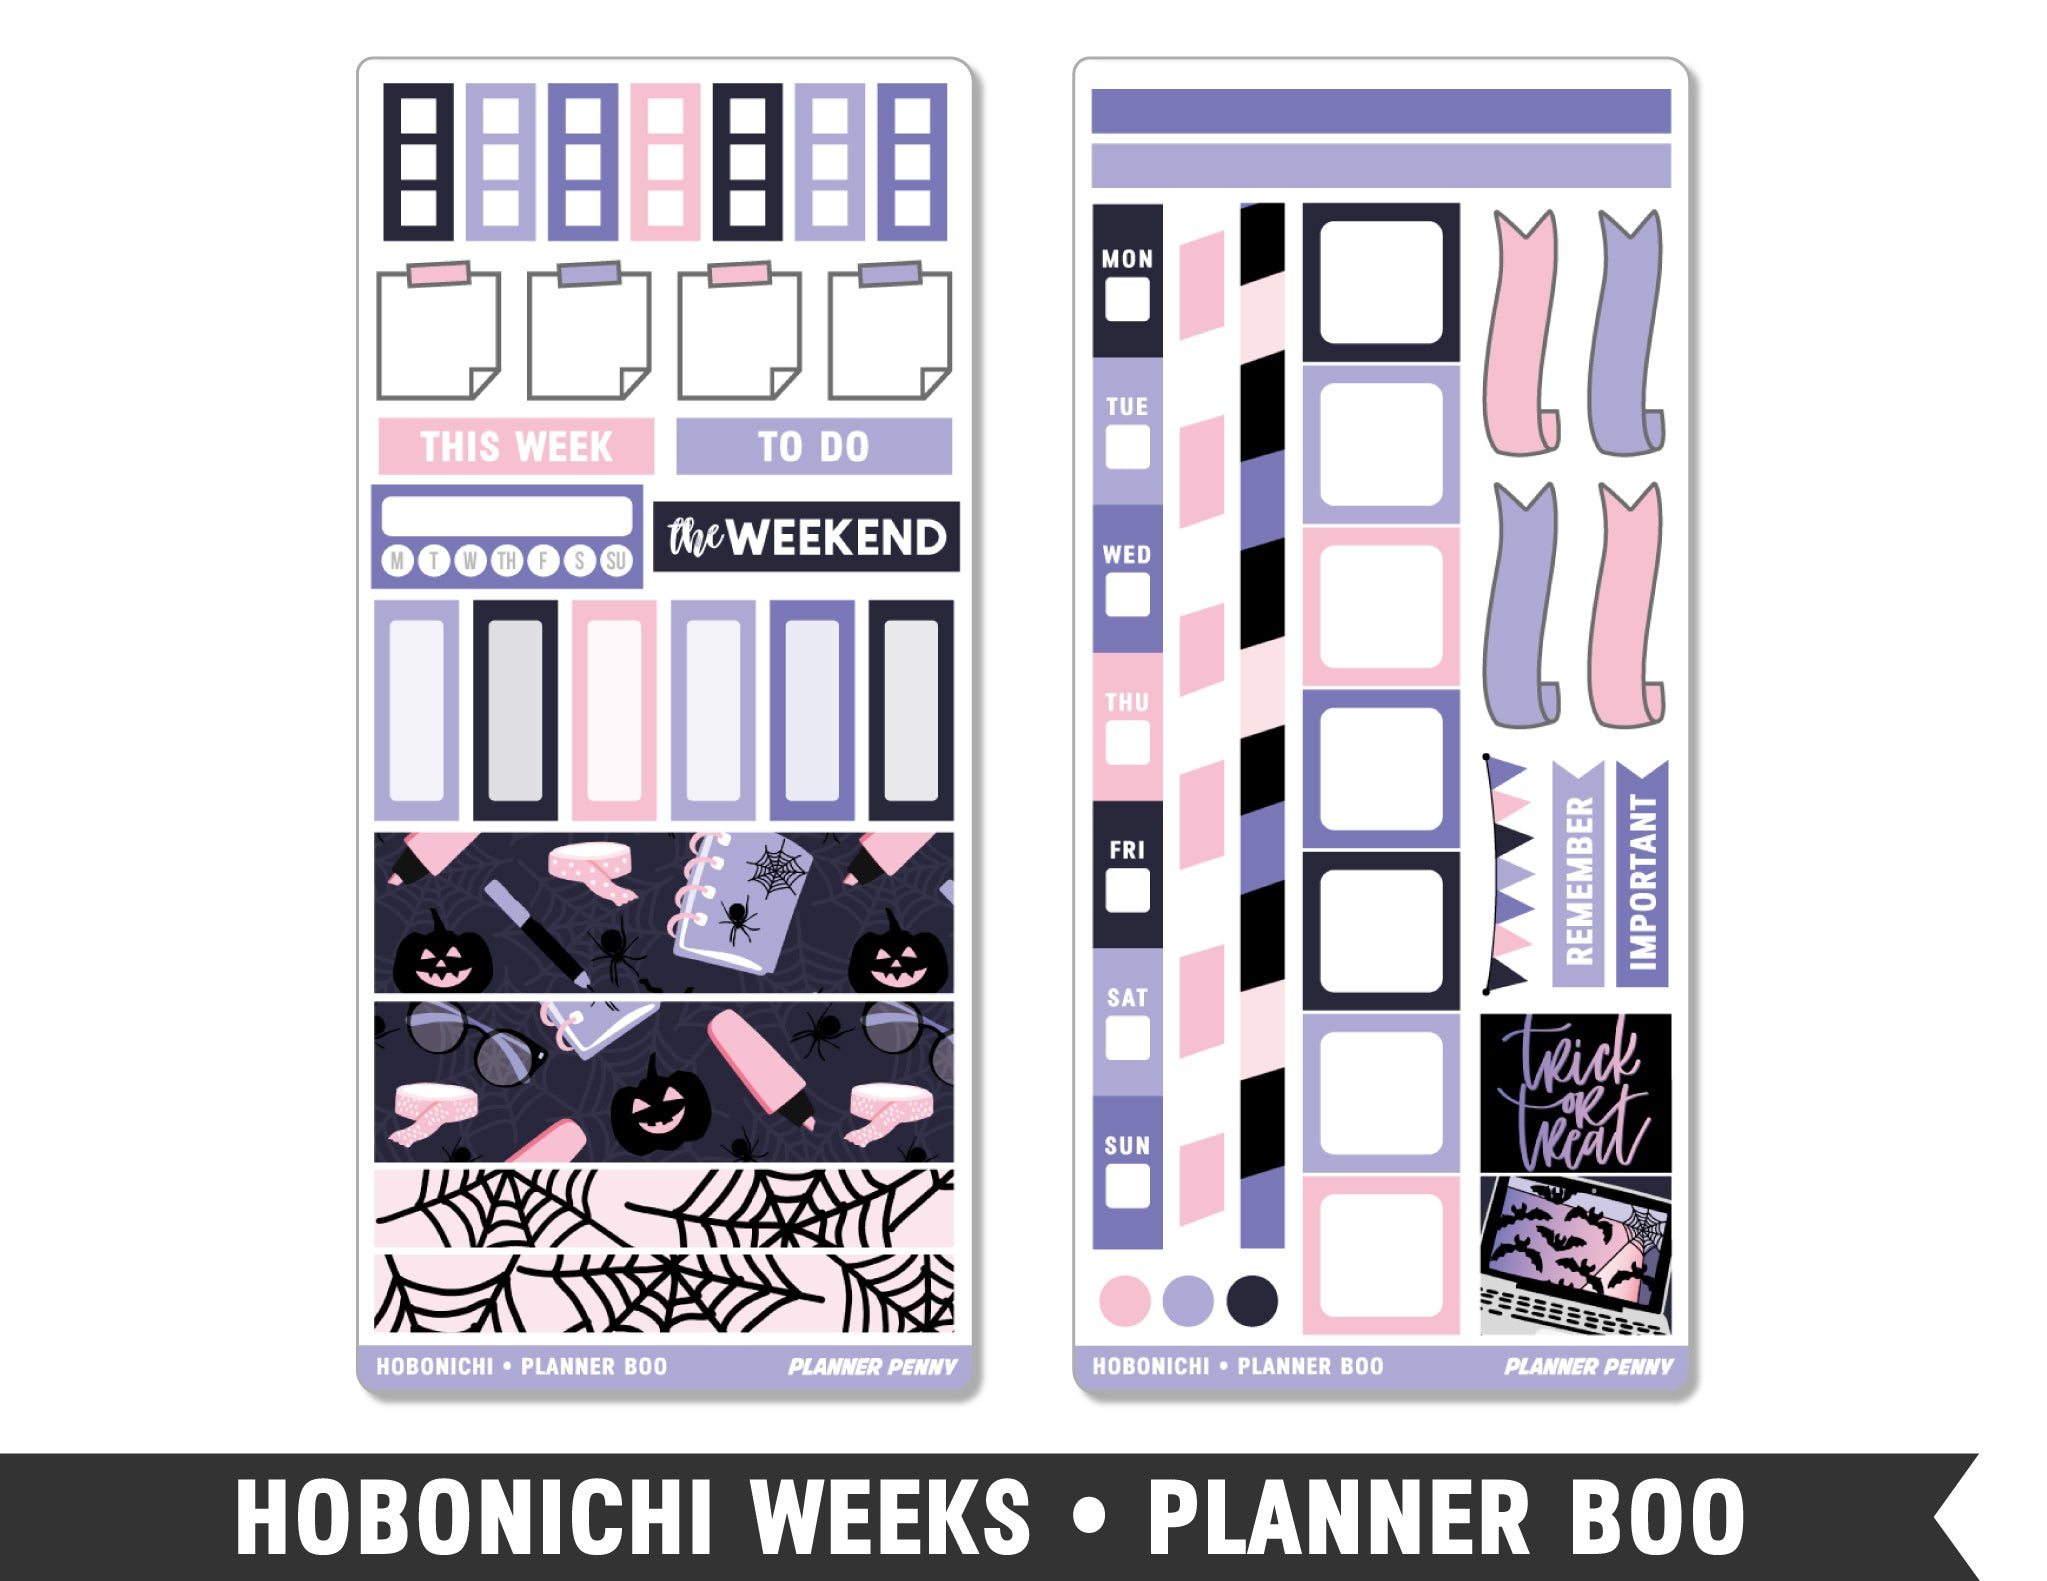 Hobonichi Weeks • Planner Boo • Weekly Spread Planner Stickers - Planner Penny